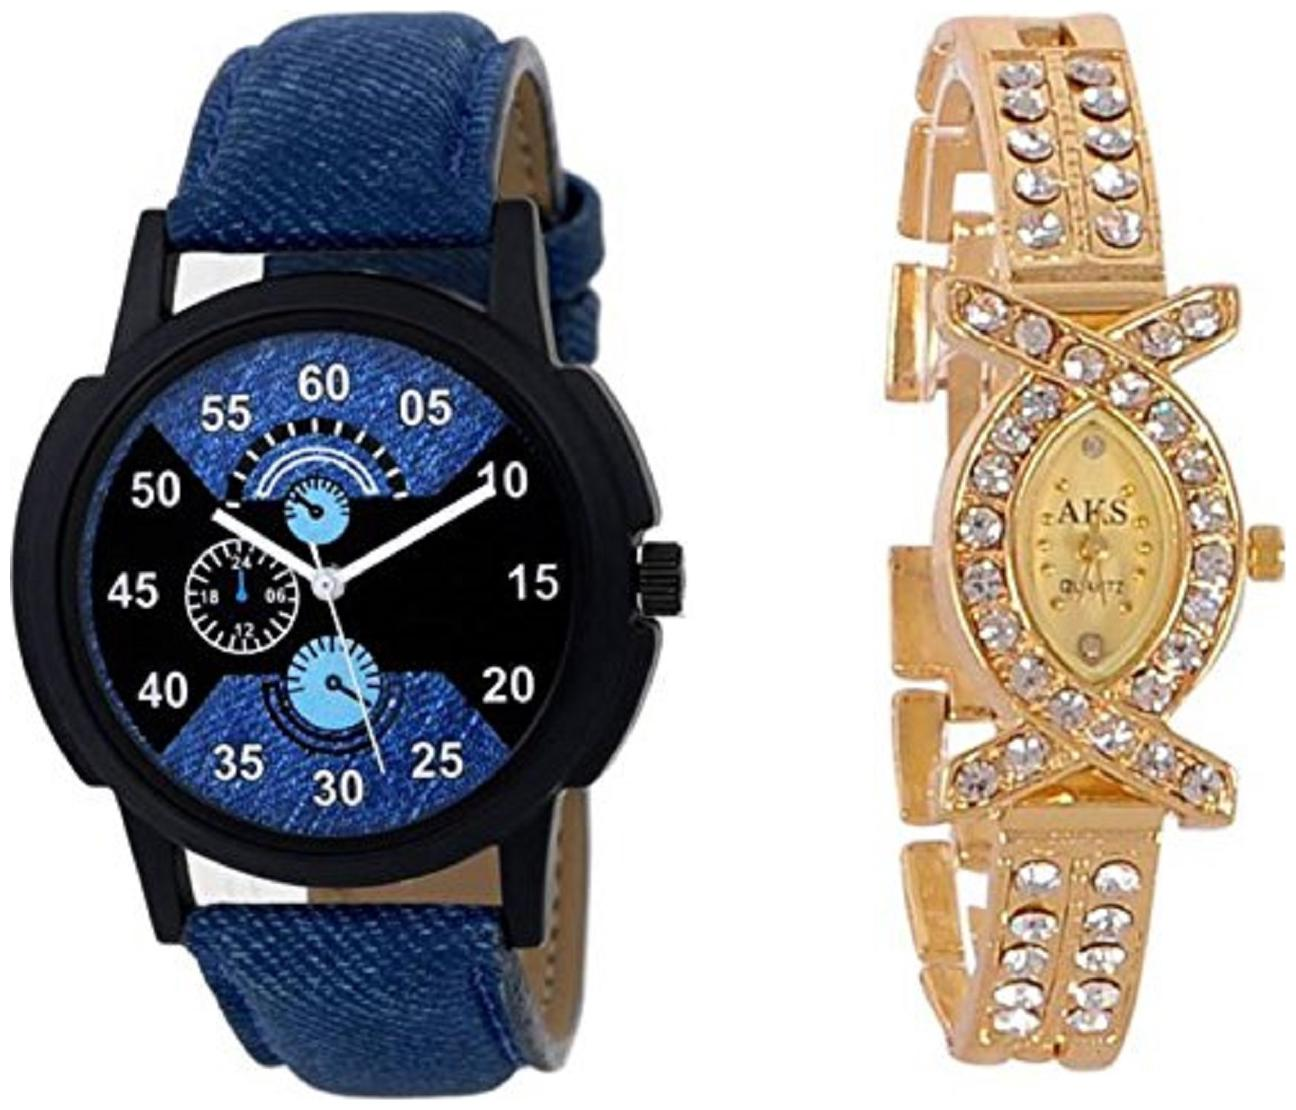 Crispy Analog Stylish Stone Designer Watch for Women   Blue Dial Watch for Men  Pack of 2